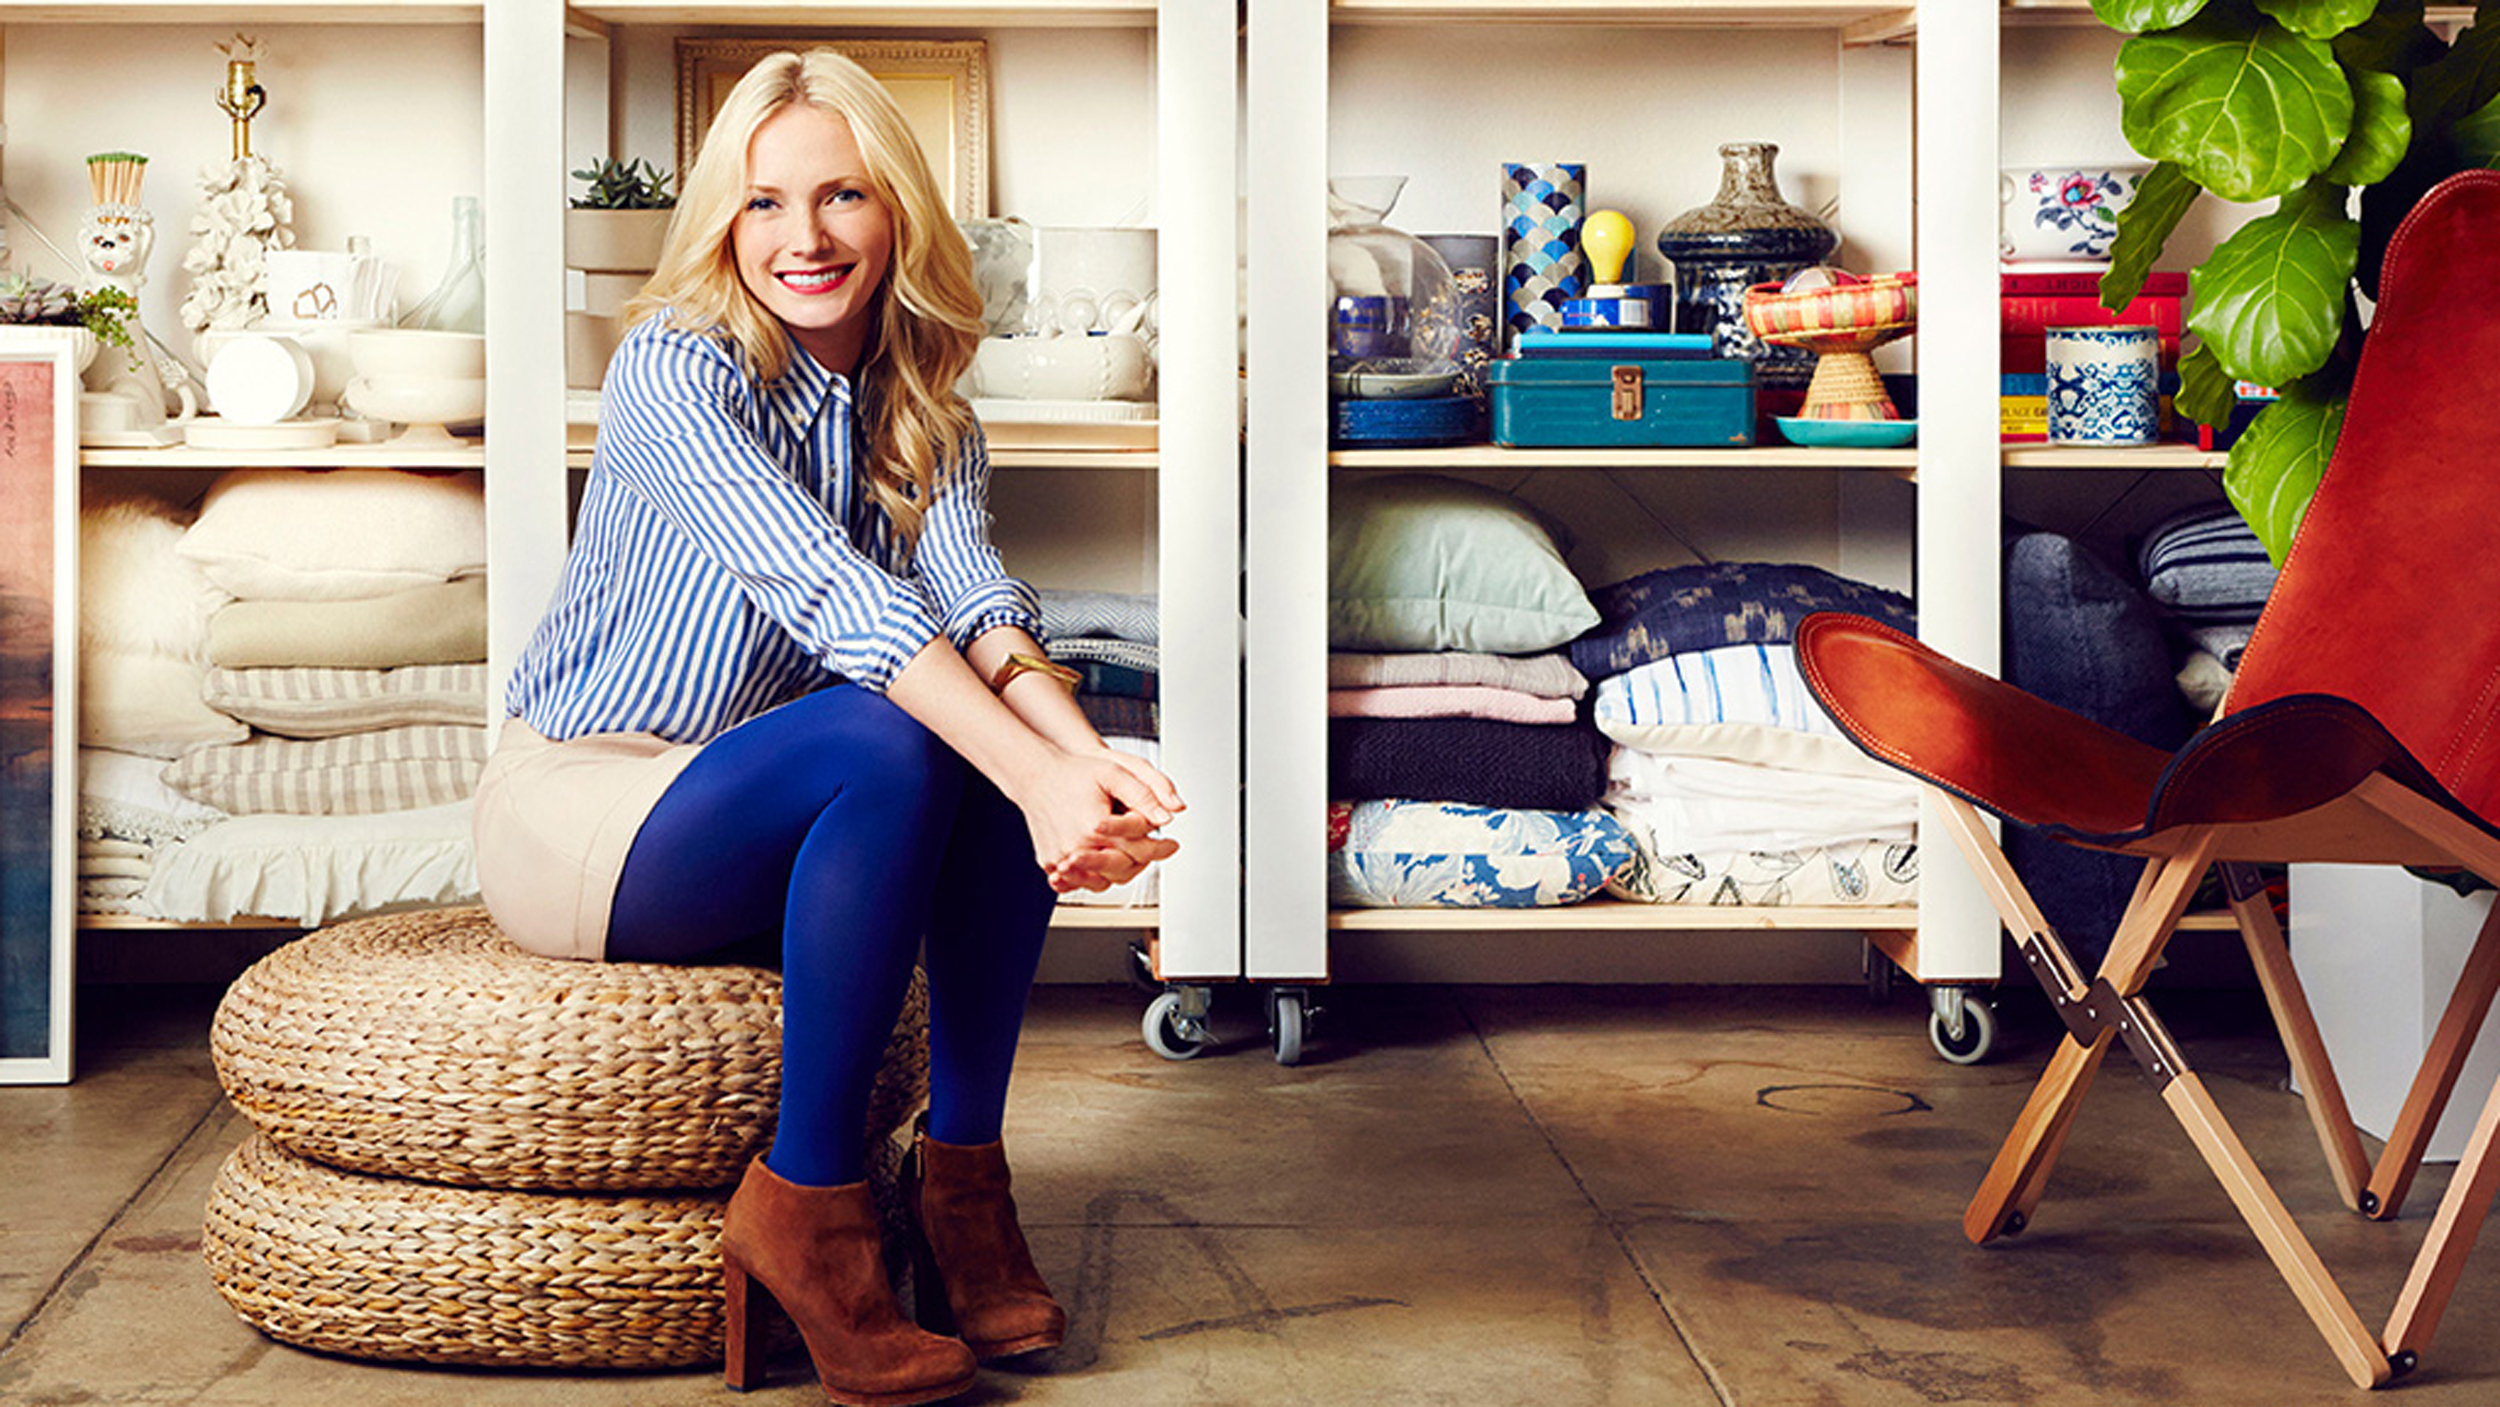 HGTV designer Emily Henderson on what every room in a home needs - TODAY.com